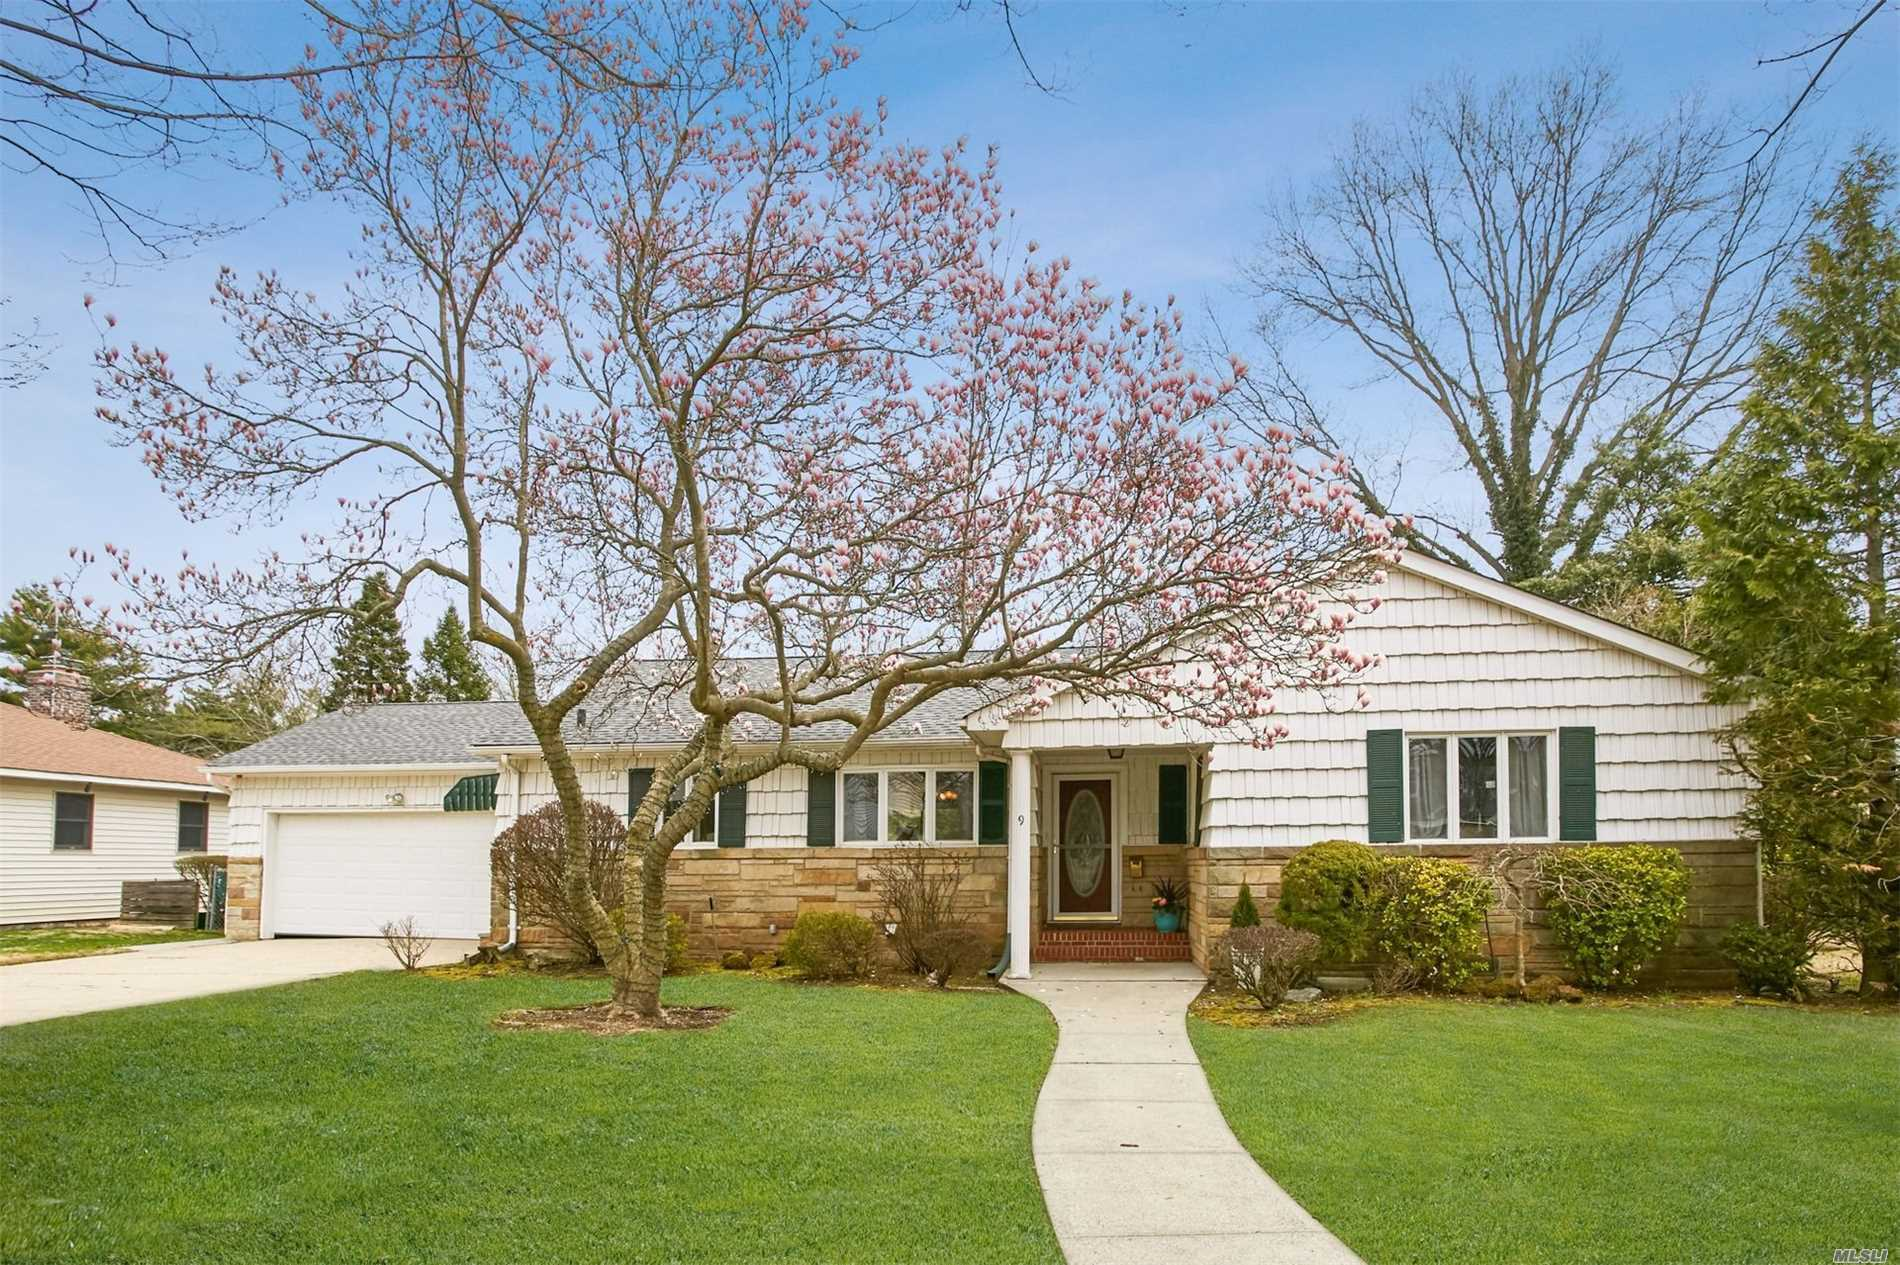 This style savvy home has an open & sun-lit layout sited mid-block with an expansive backyard convenient to the Stewart Manor LIRR Station. Living room has a vaulted ceiling with 2 skylights, sliders to a patio & a gas fireplace all open to dining room. There is a large granite EIK & SS appliances & a door directly to the side by side driveway & 2 car garage. The finished basement is huge with a recreation room & 2 finished rooms. Looking for easy living - this is a must see for you.